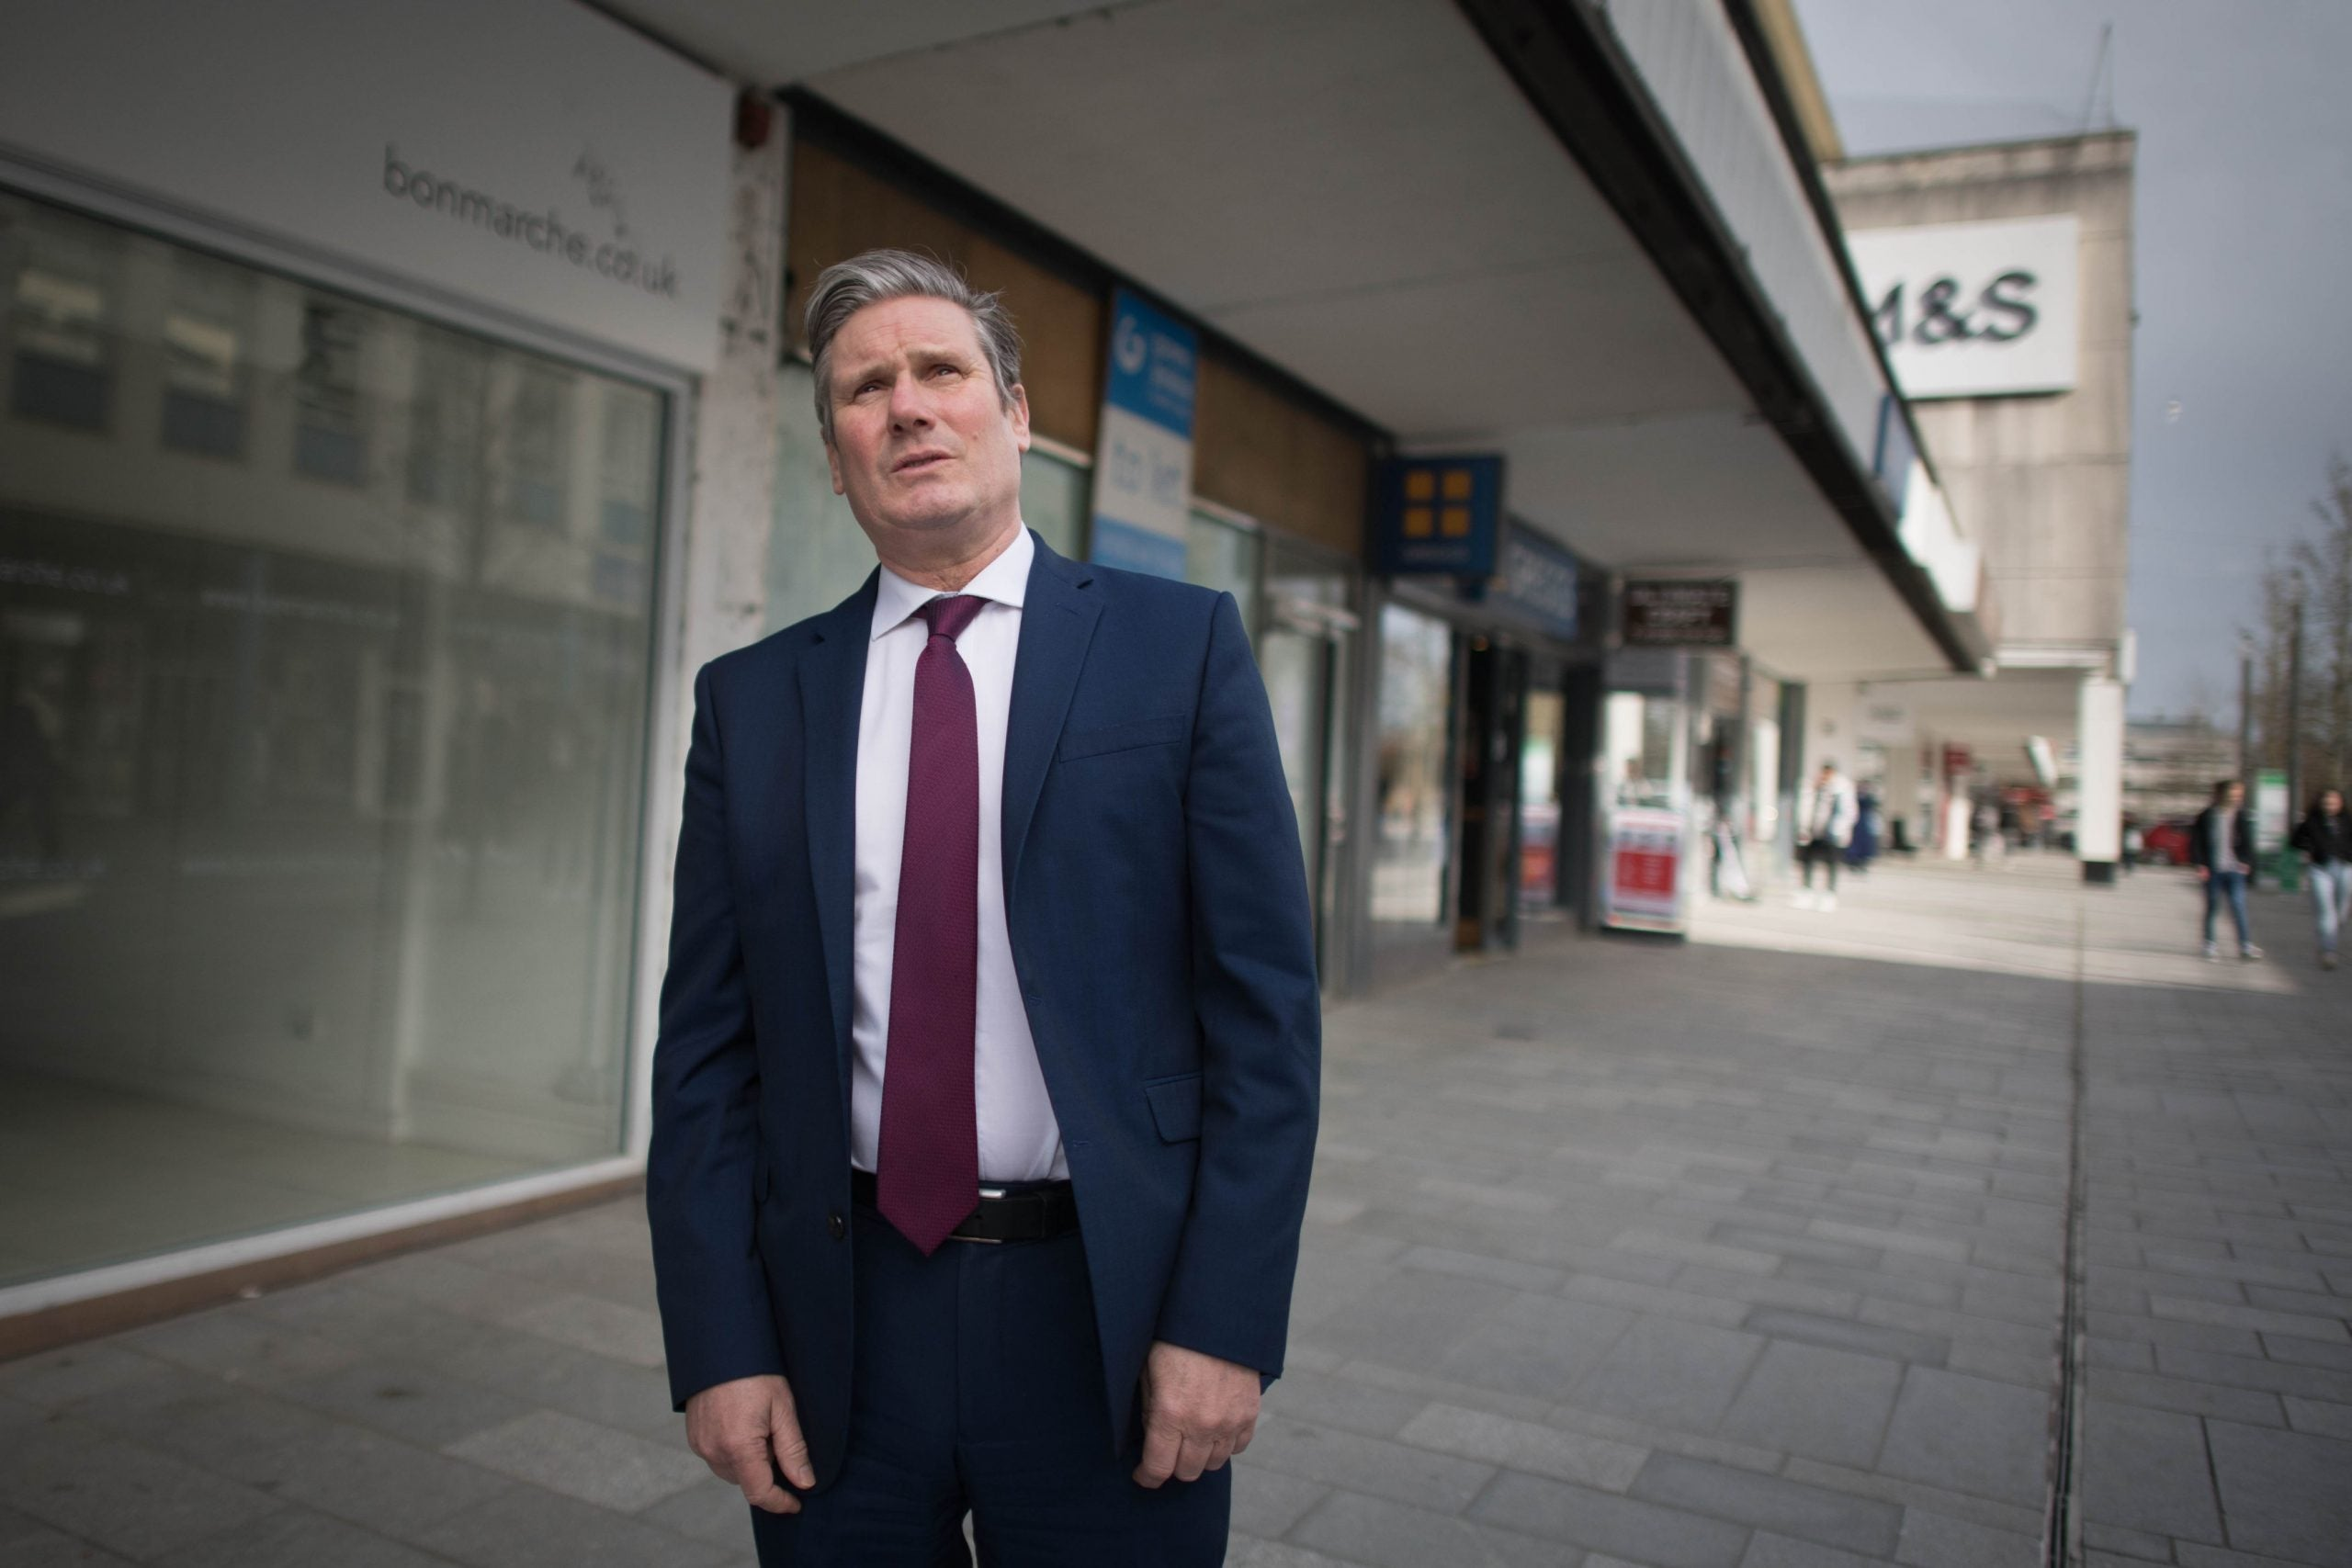 It's too early to write off Keir Starmer's leadership – but soon he will have to address the nation